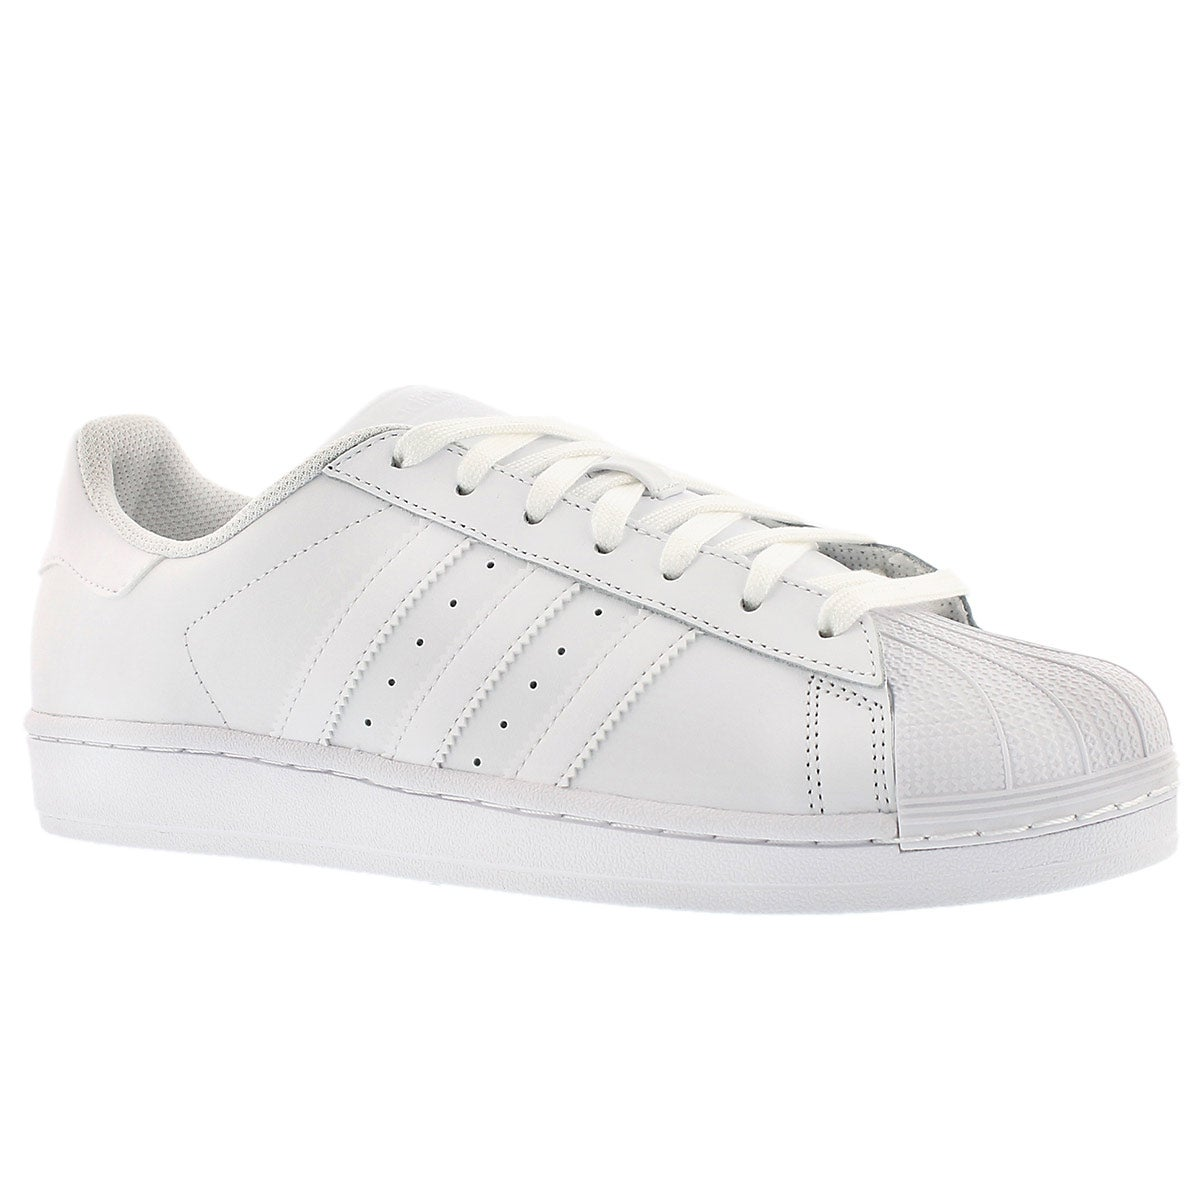 Men's SUPERSTAR white/white fashion sneakers